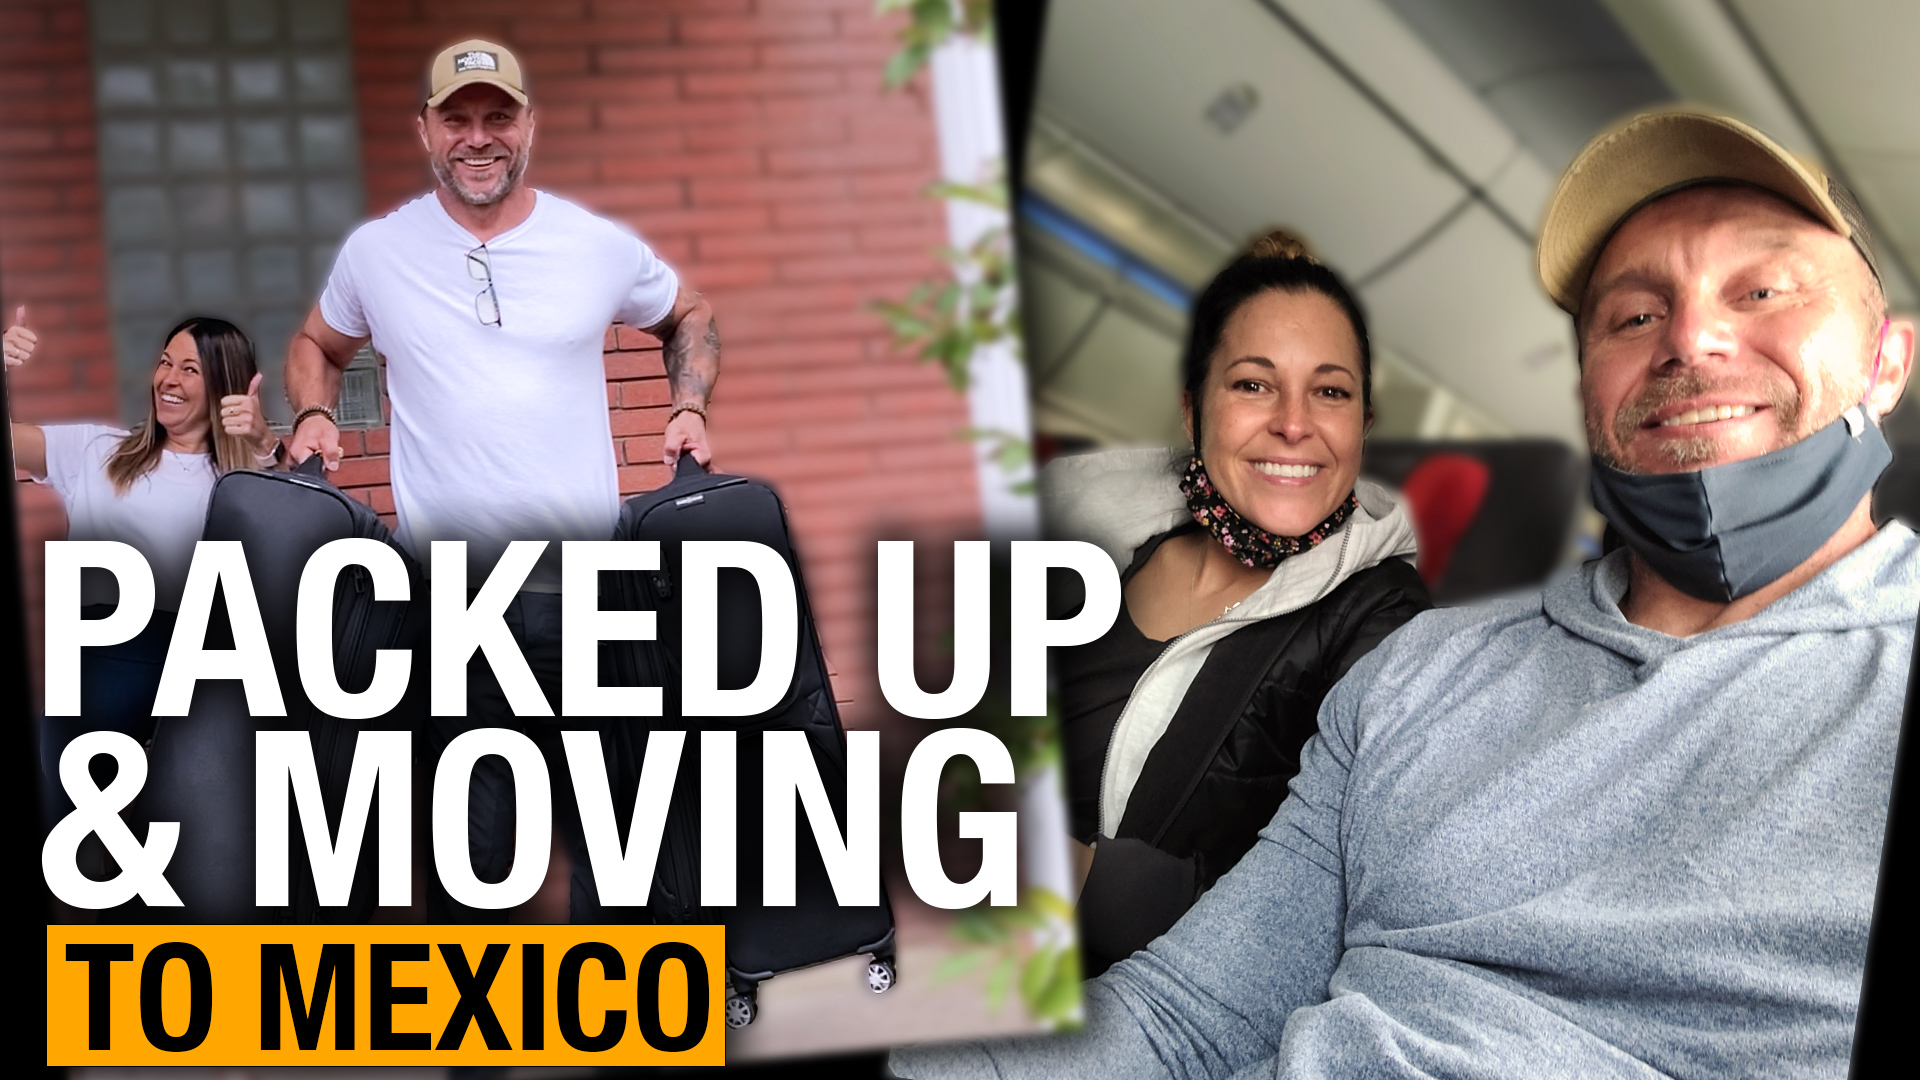 Canadian couple sells everything, moves to Mexico to be free